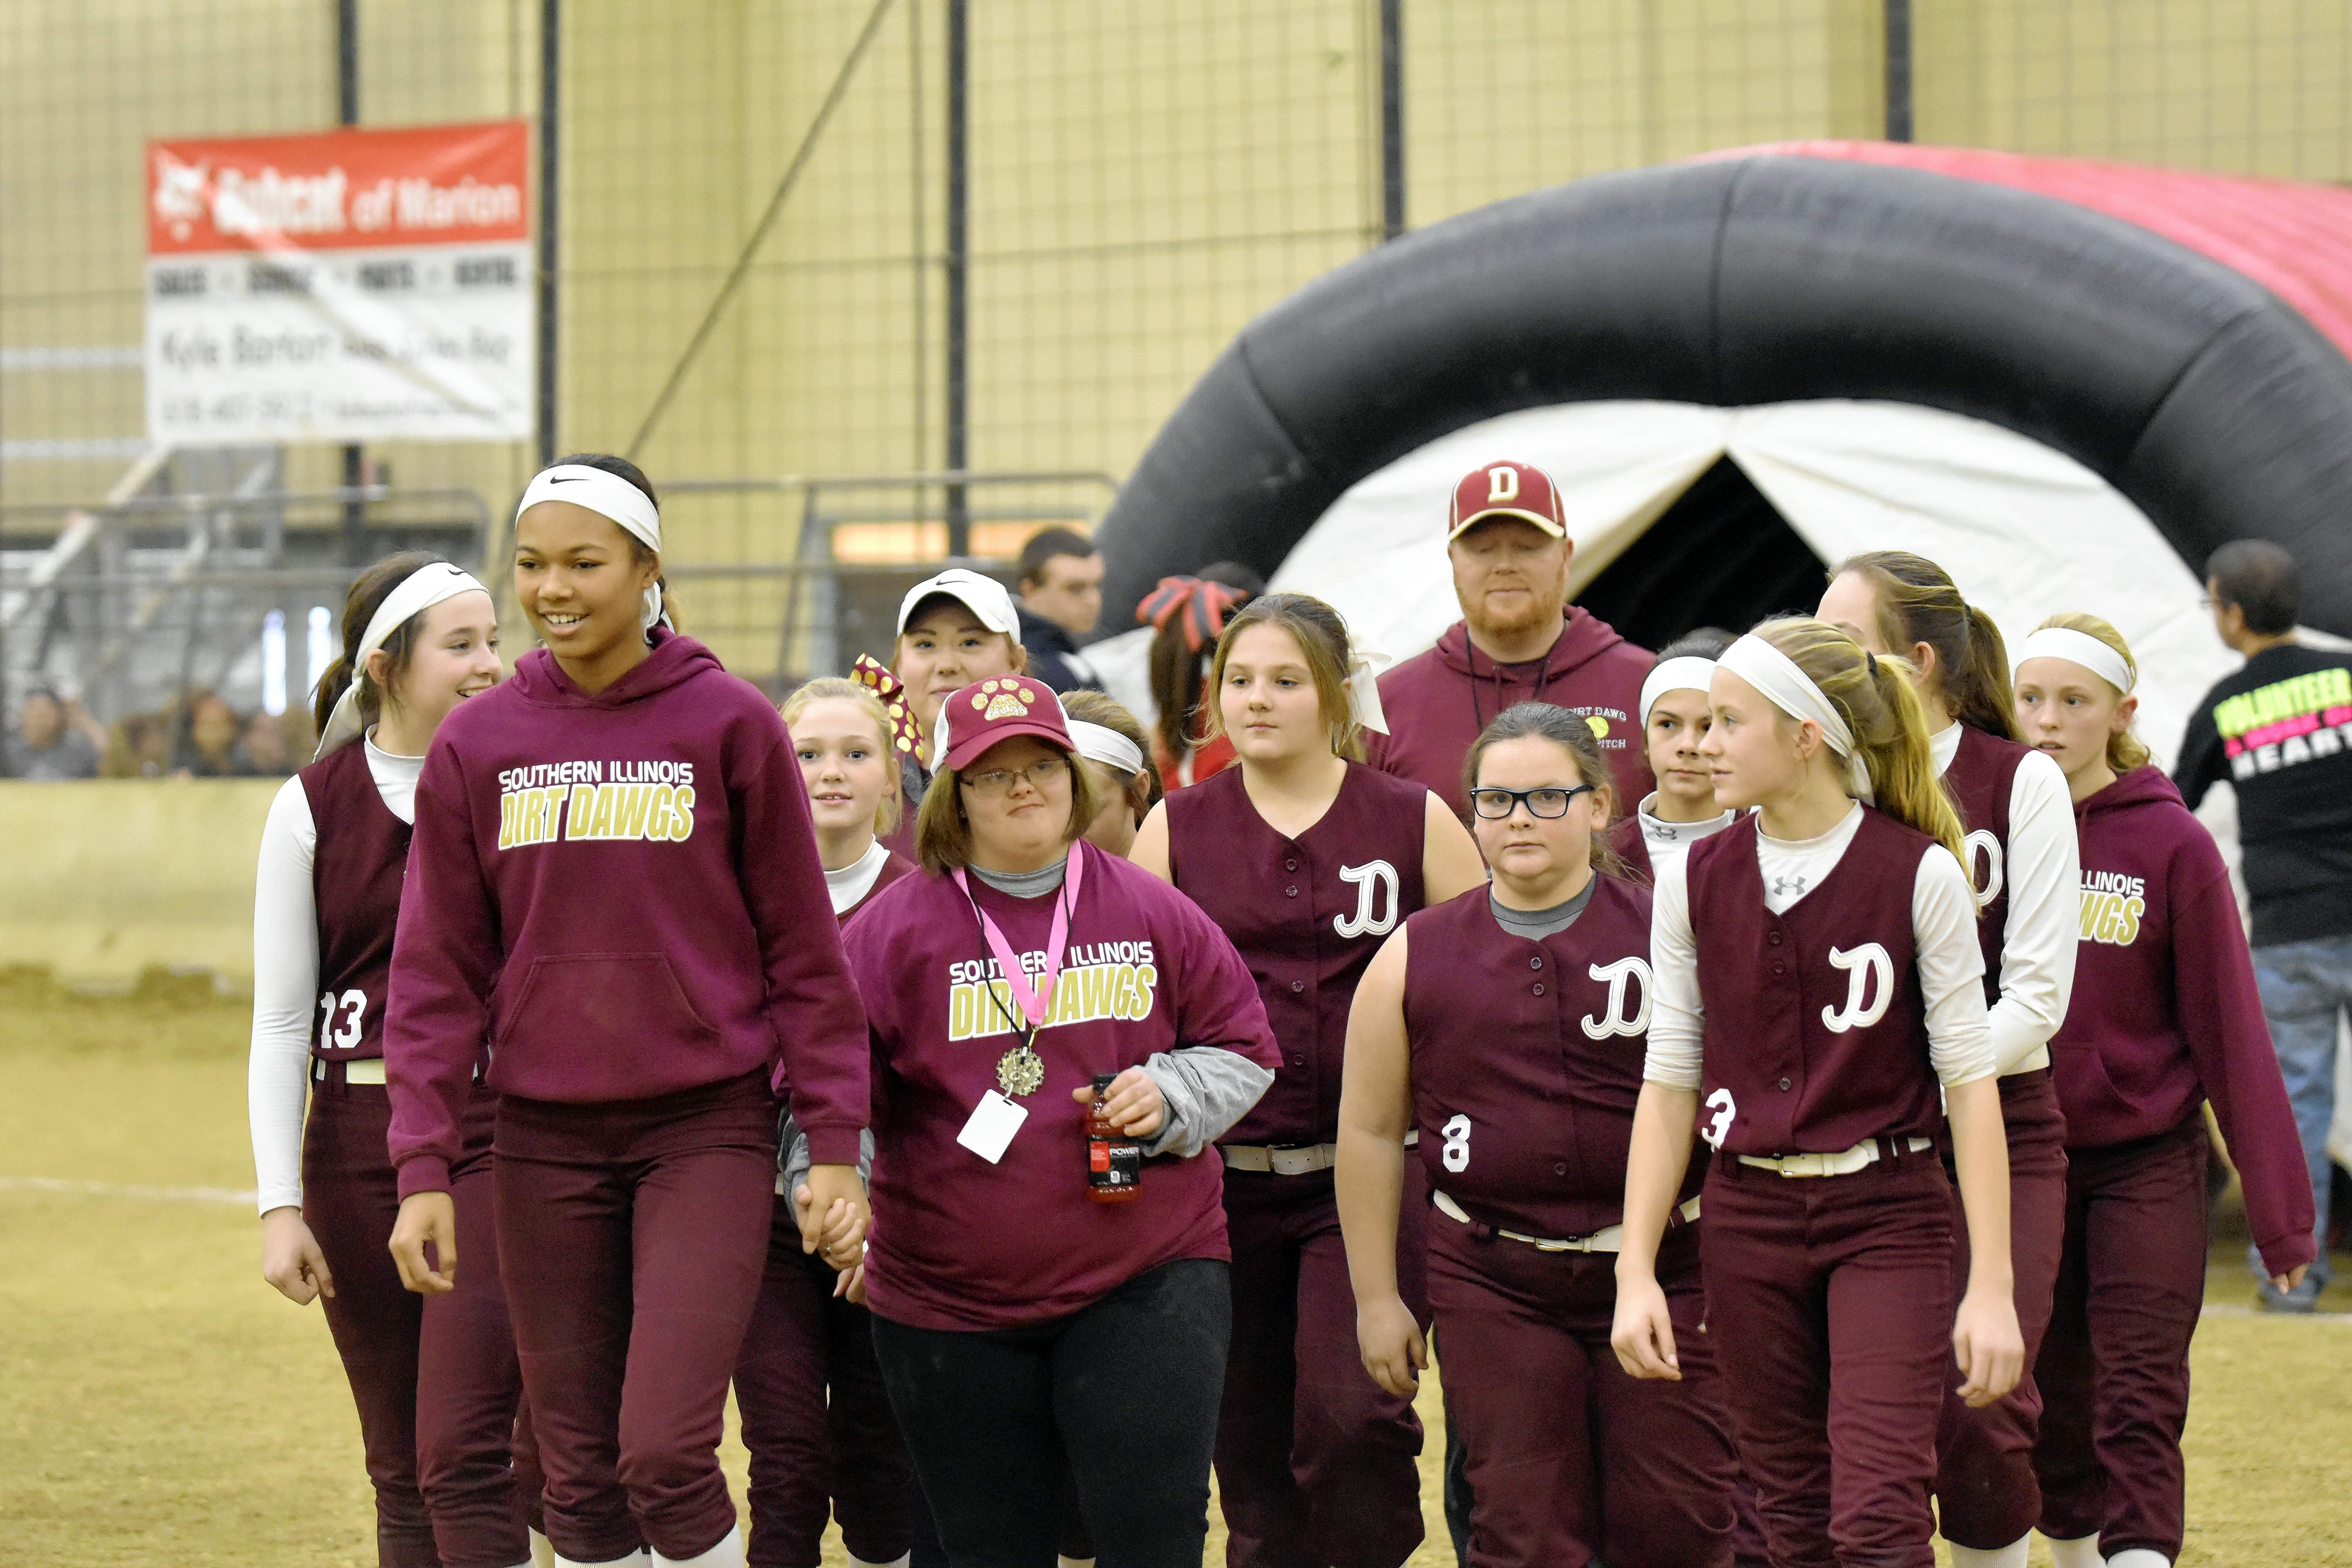 The Southern Illinois Dirt Dawgs are shown during the opening ceremony with their Special Olympics athlete in Brenna Asbury.